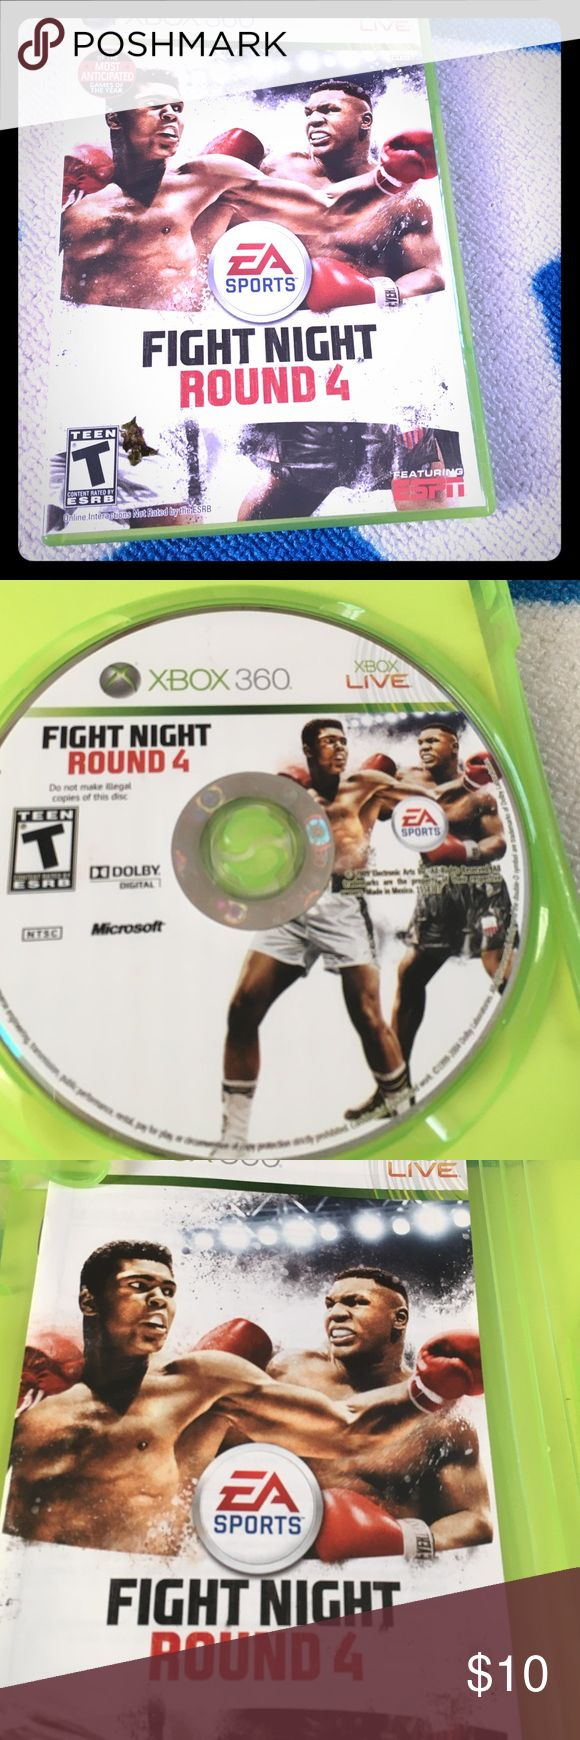 Selling this Fight night round 4 Xbox 360 on Poshmark! My username is: icesis22. #shopmycloset #poshmark #fashion #shopping #style #forsale #Xbox 360 #Other